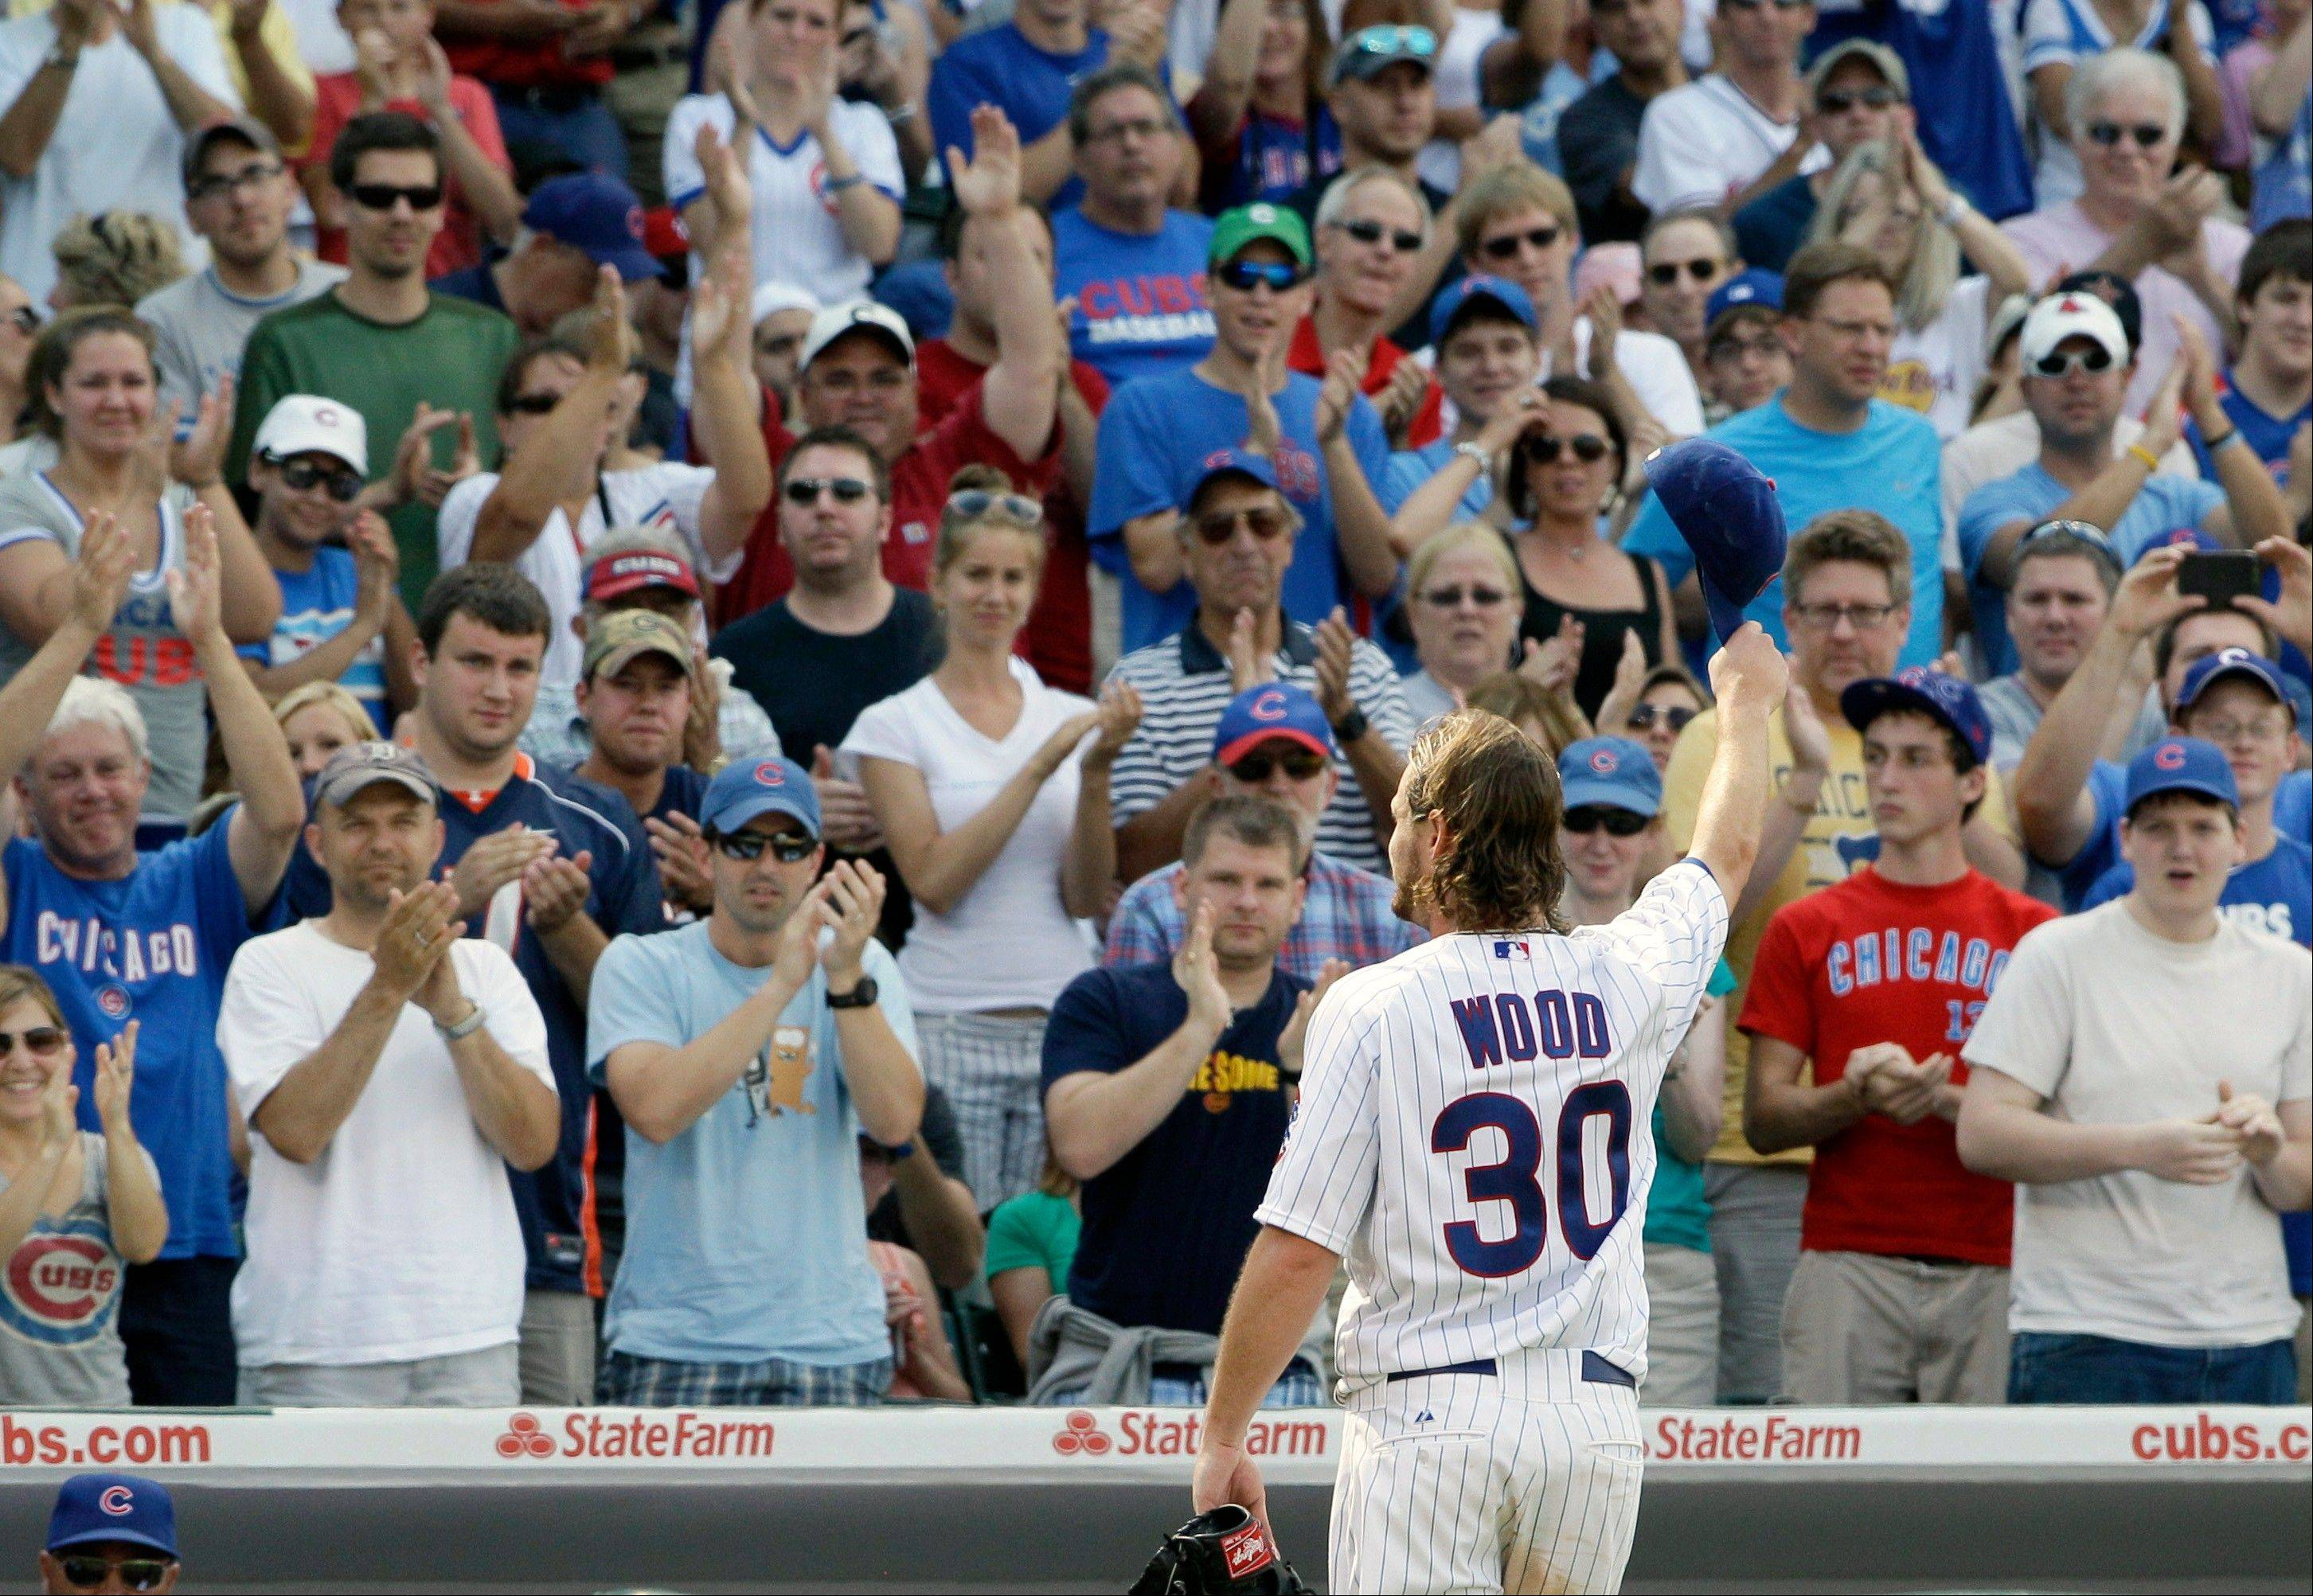 Travis Wood waves to the crowd as he walks back to the dugout after relief pitcher Shawn Camp replaced him during the eighth inning Sunday at Wrigley Field.